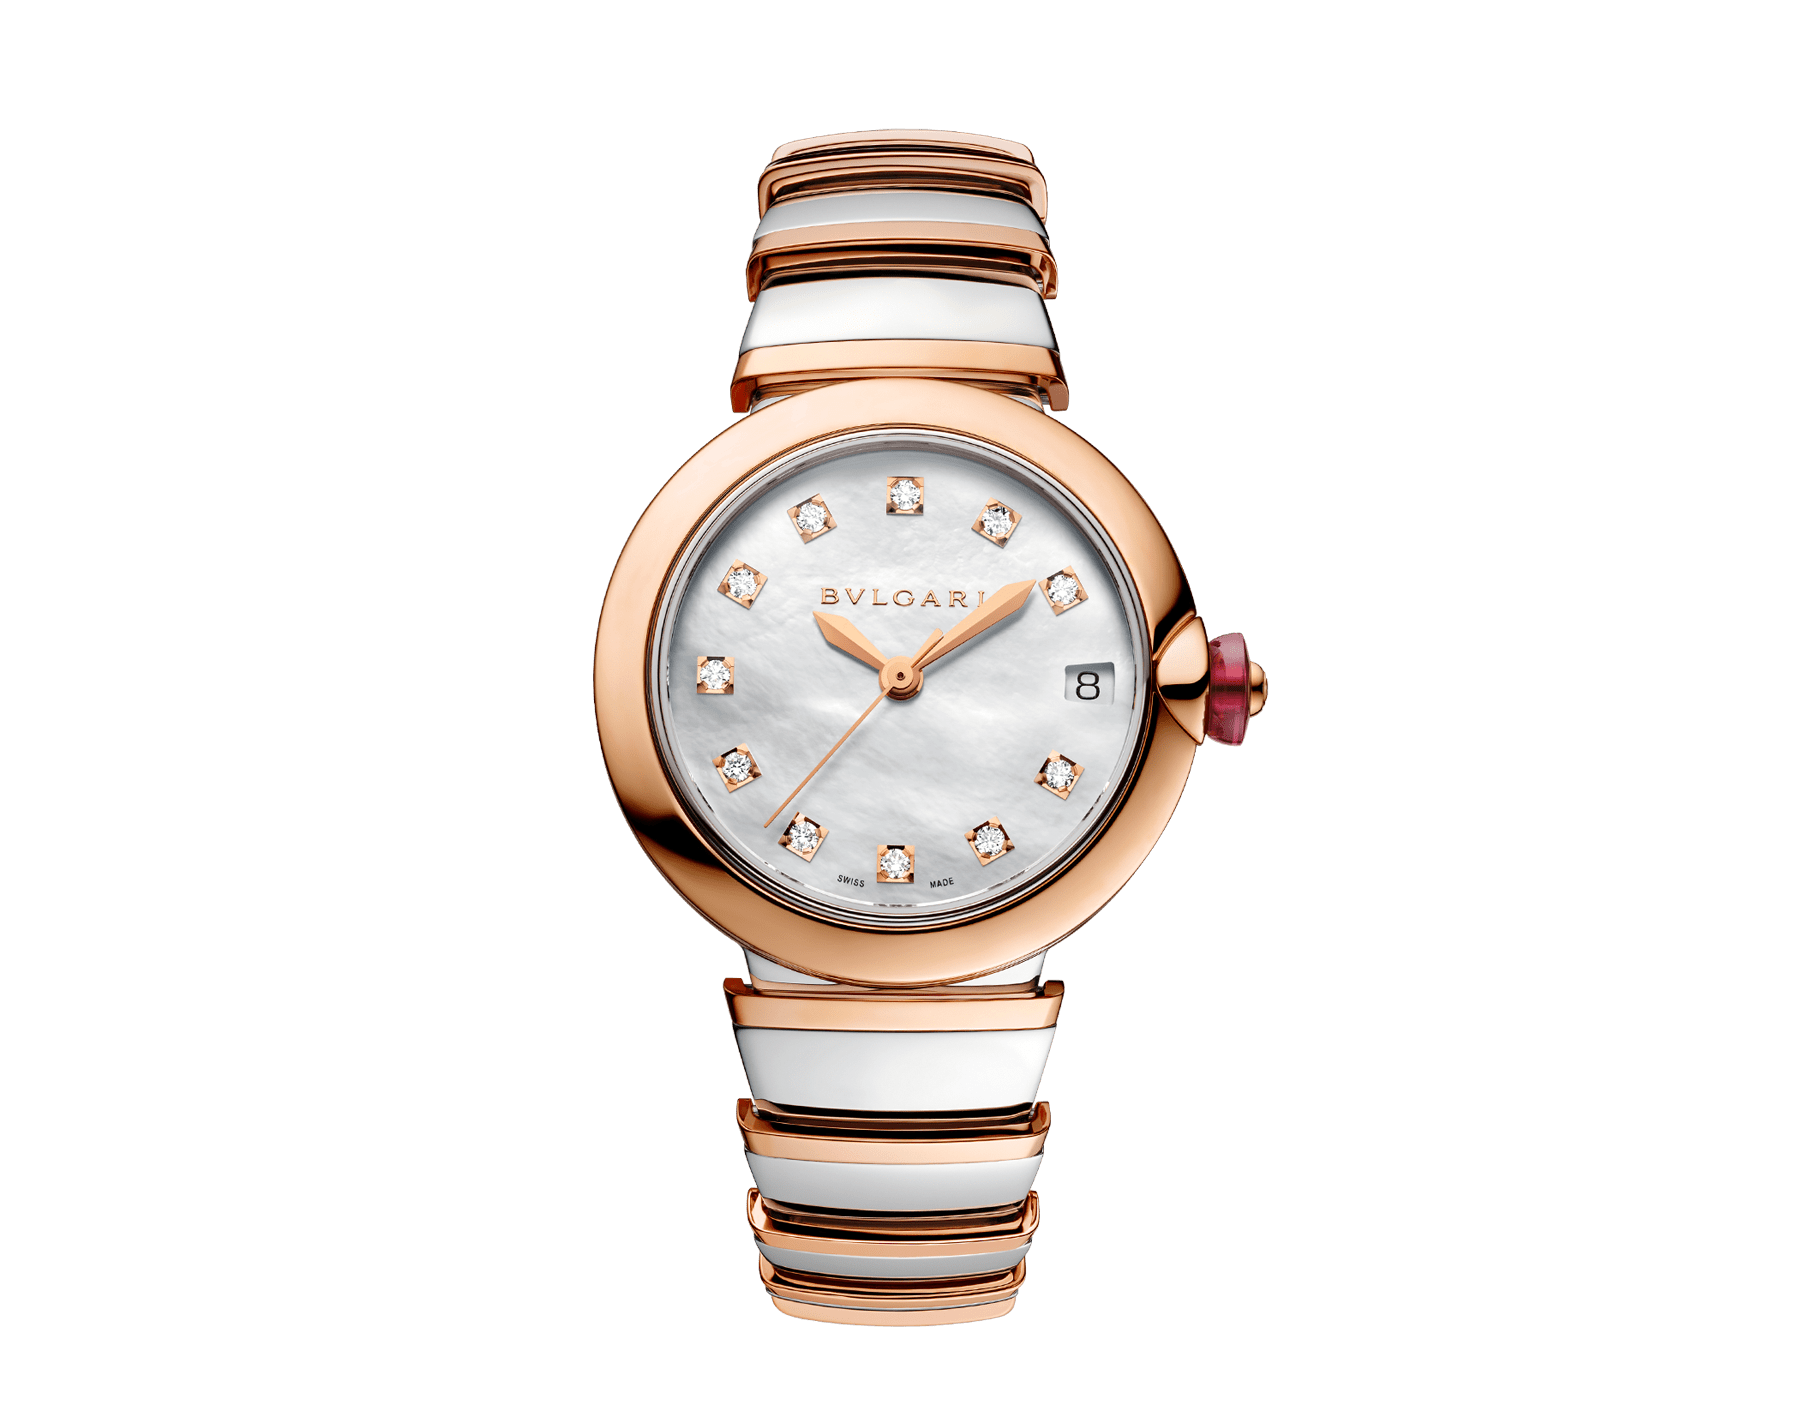 LVCEA watch with stainless steel case, 18 kt rose gold bezel, white mother-of-pearl dial, diamond indexes, stainless steel and 18 kt rose gold bracelet. 102198 image 1